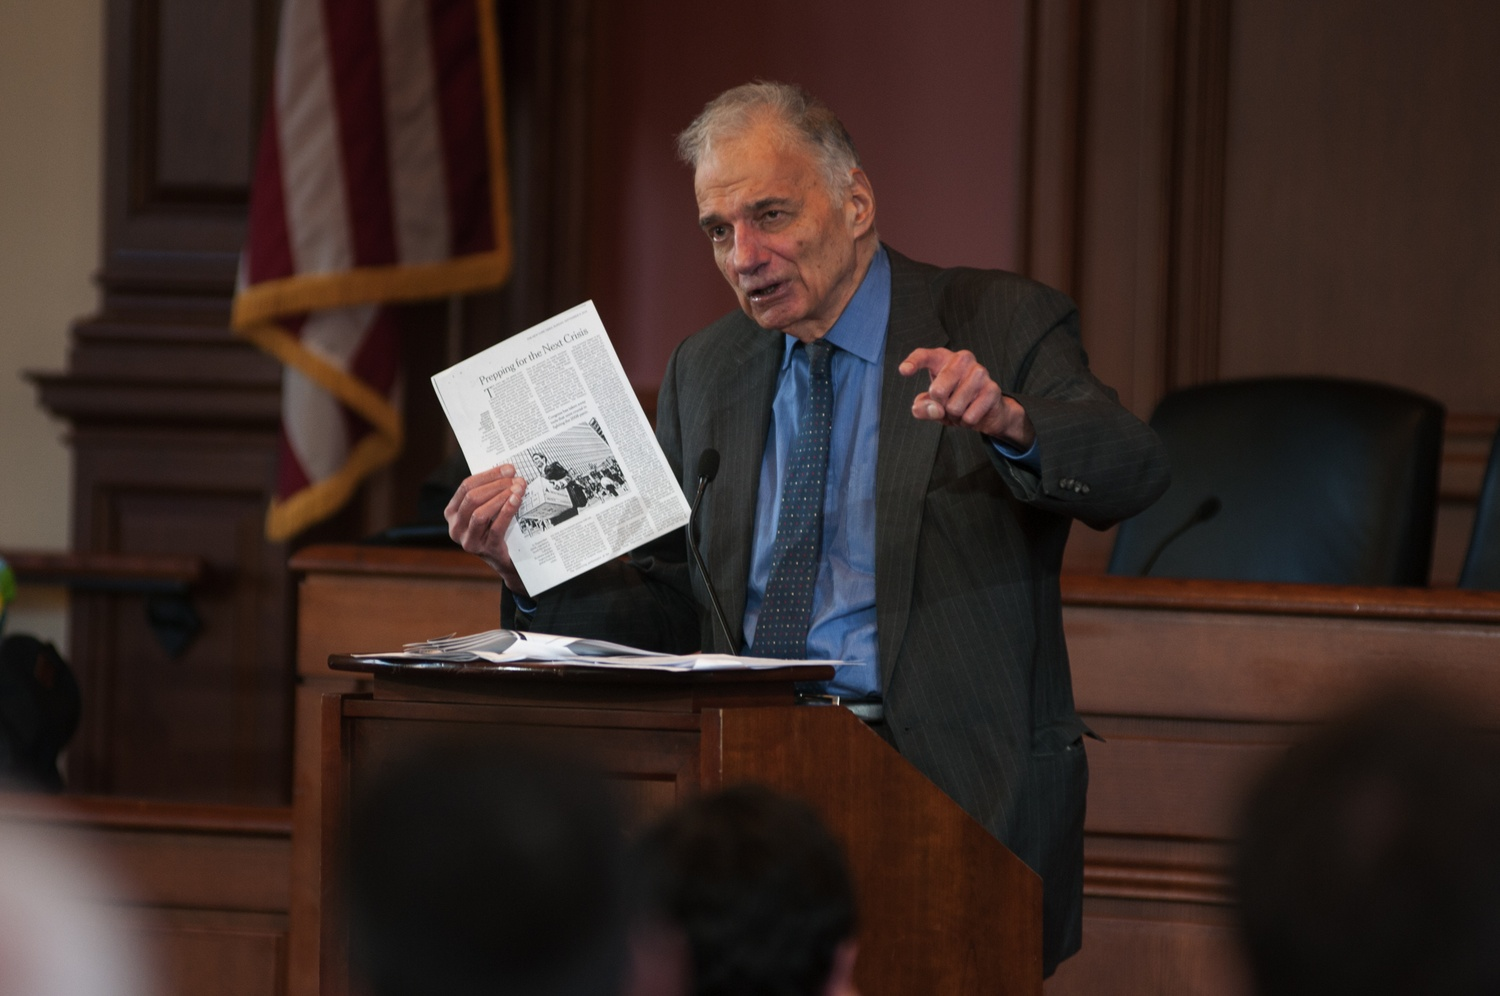 Ralph Nader argued for the importance of public interest law during a talk last year.